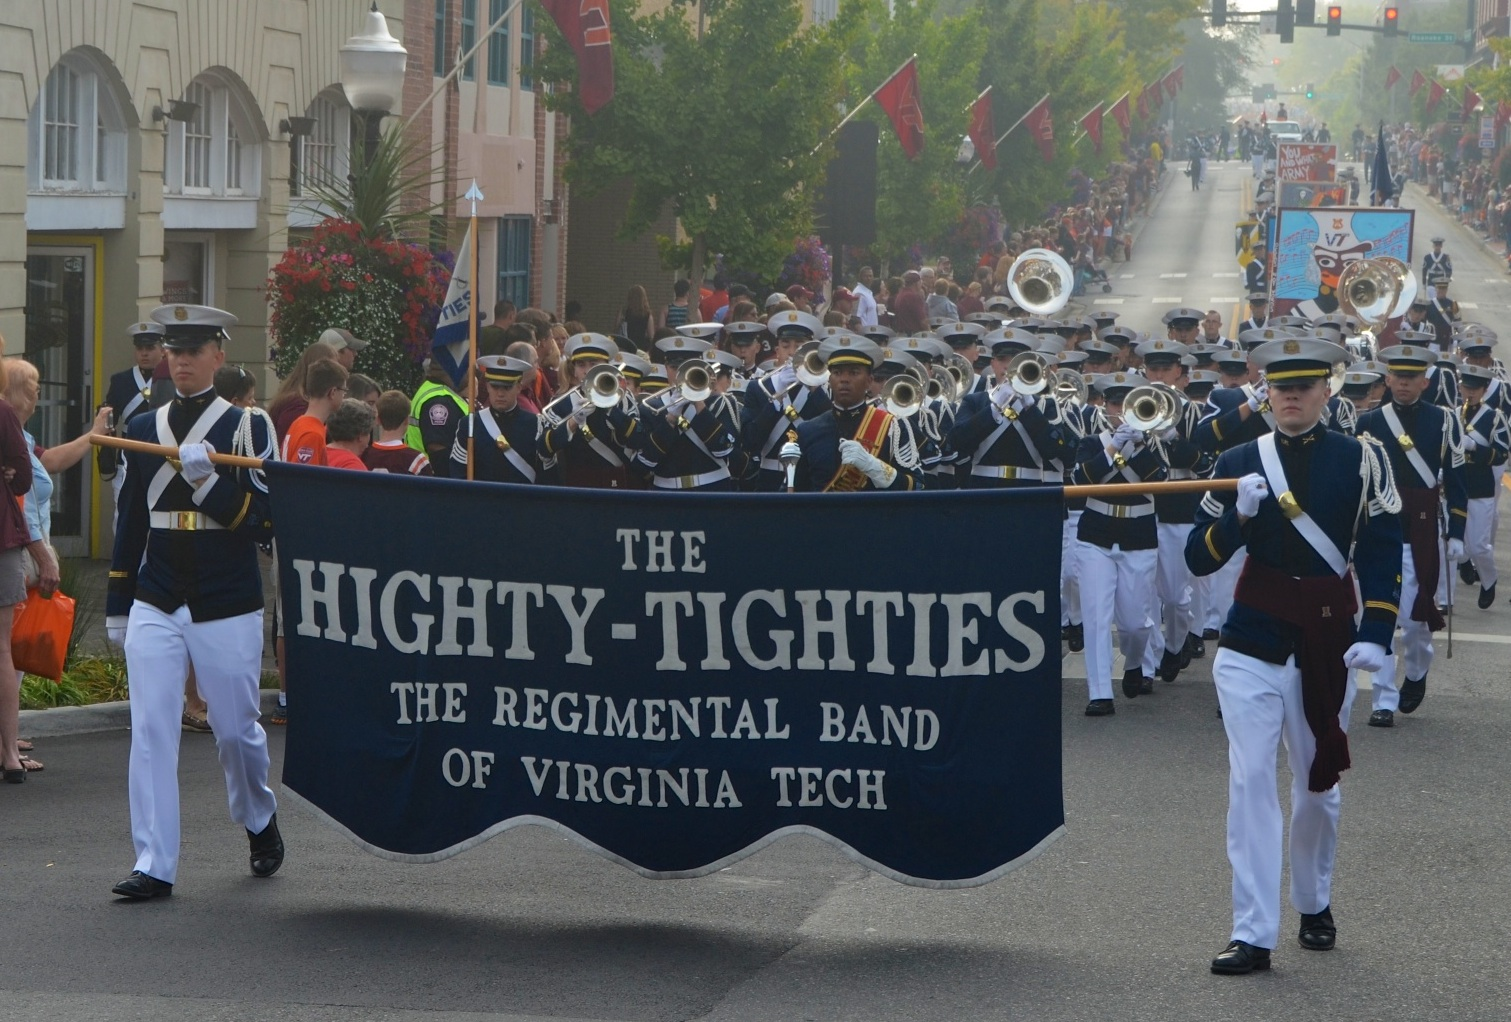 The Highty-Tighties march in a parade in downtown Blacksburg